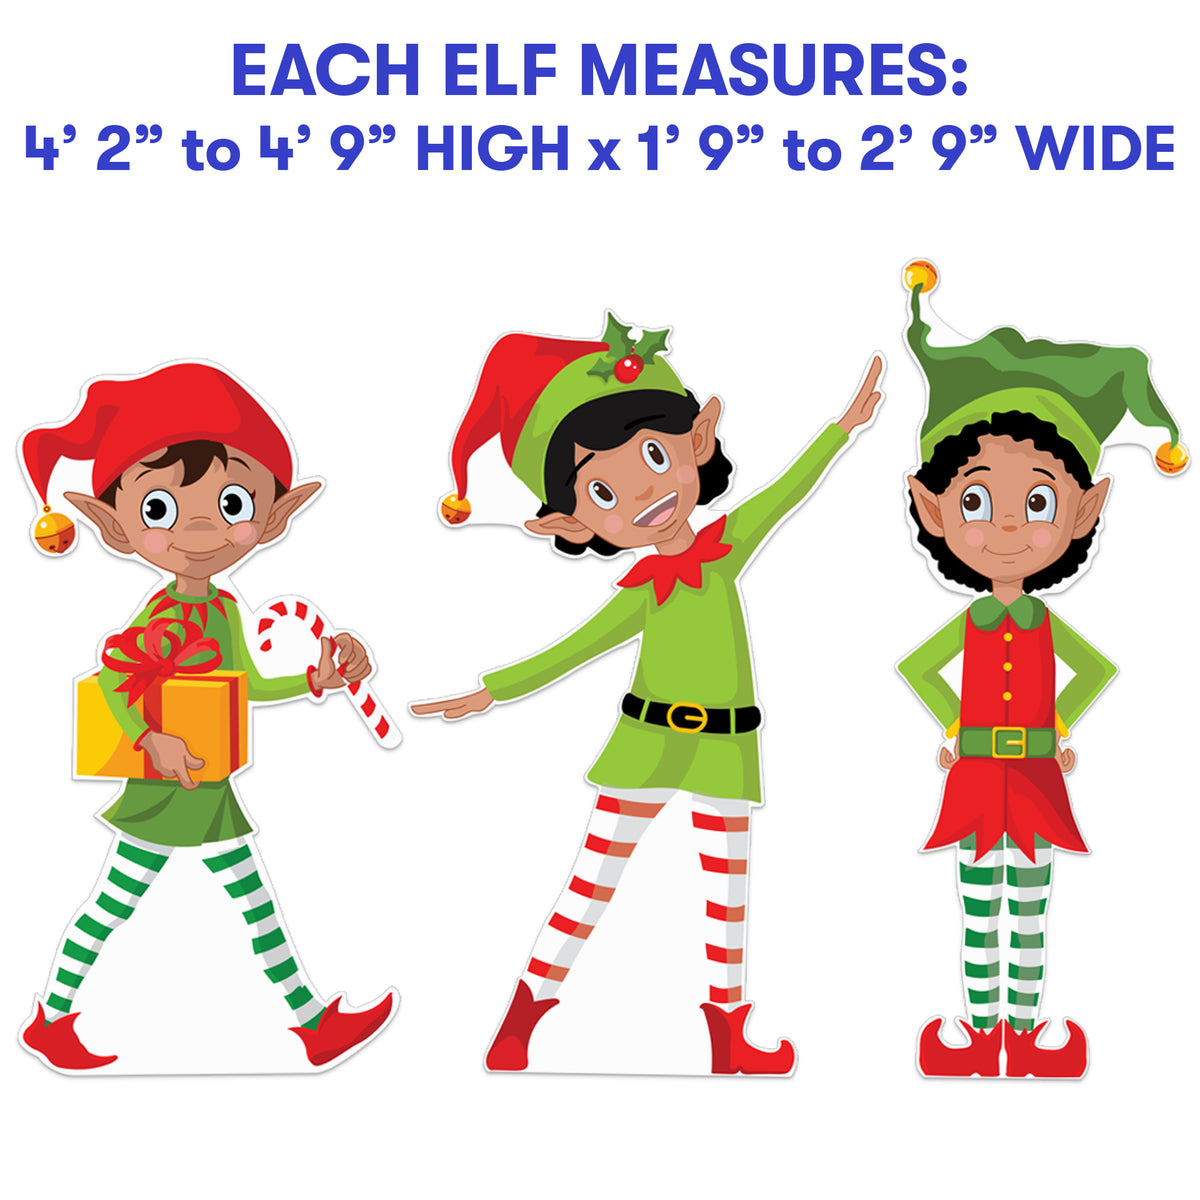 4 ft. 2 in. to 4 ft. 9 in. Elfville Jolly Removeable Wall Decal Set